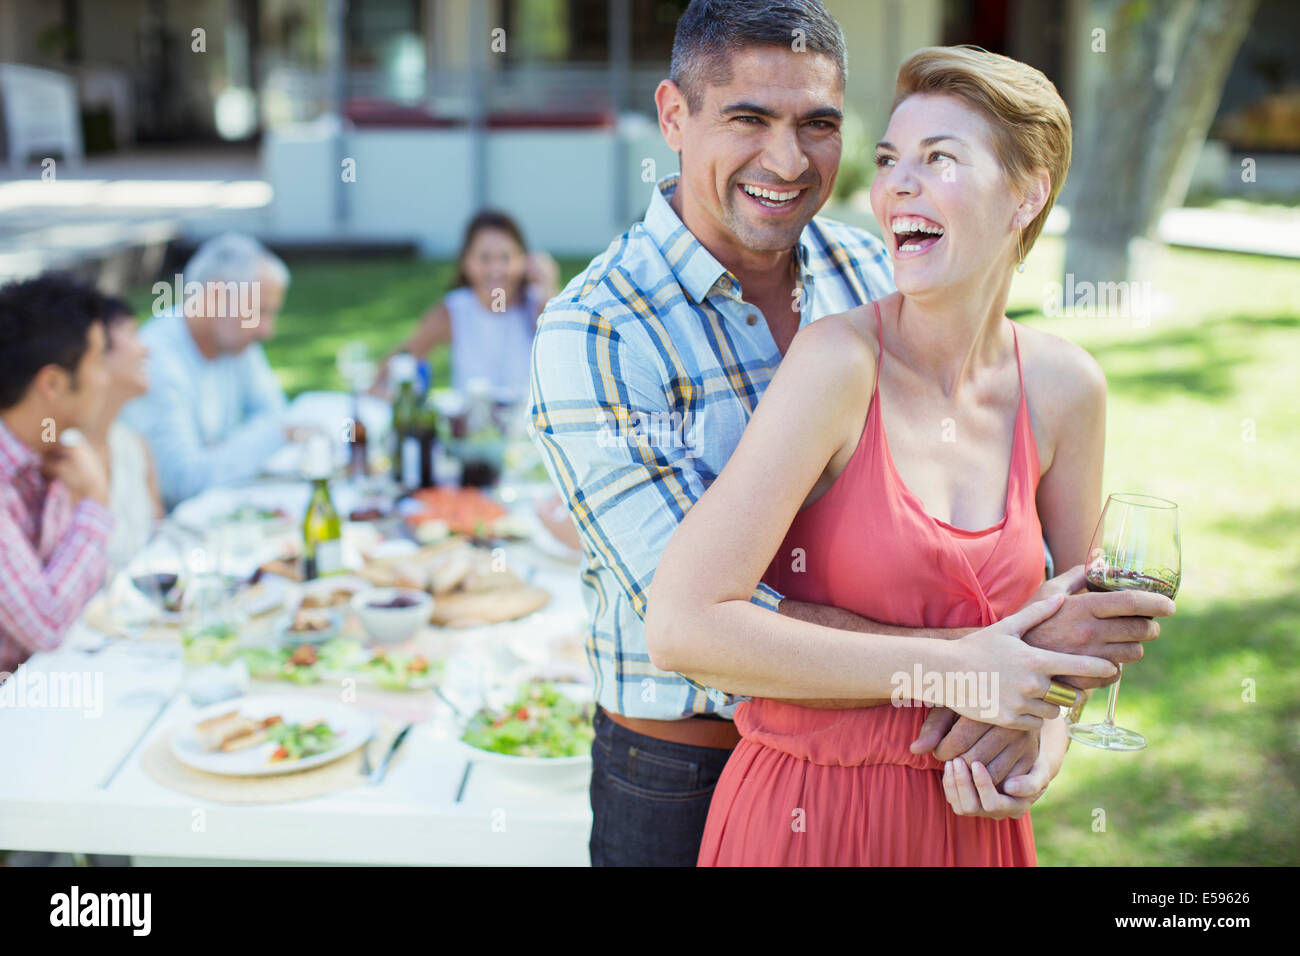 Laughing couple hugging outdoors Photo Stock